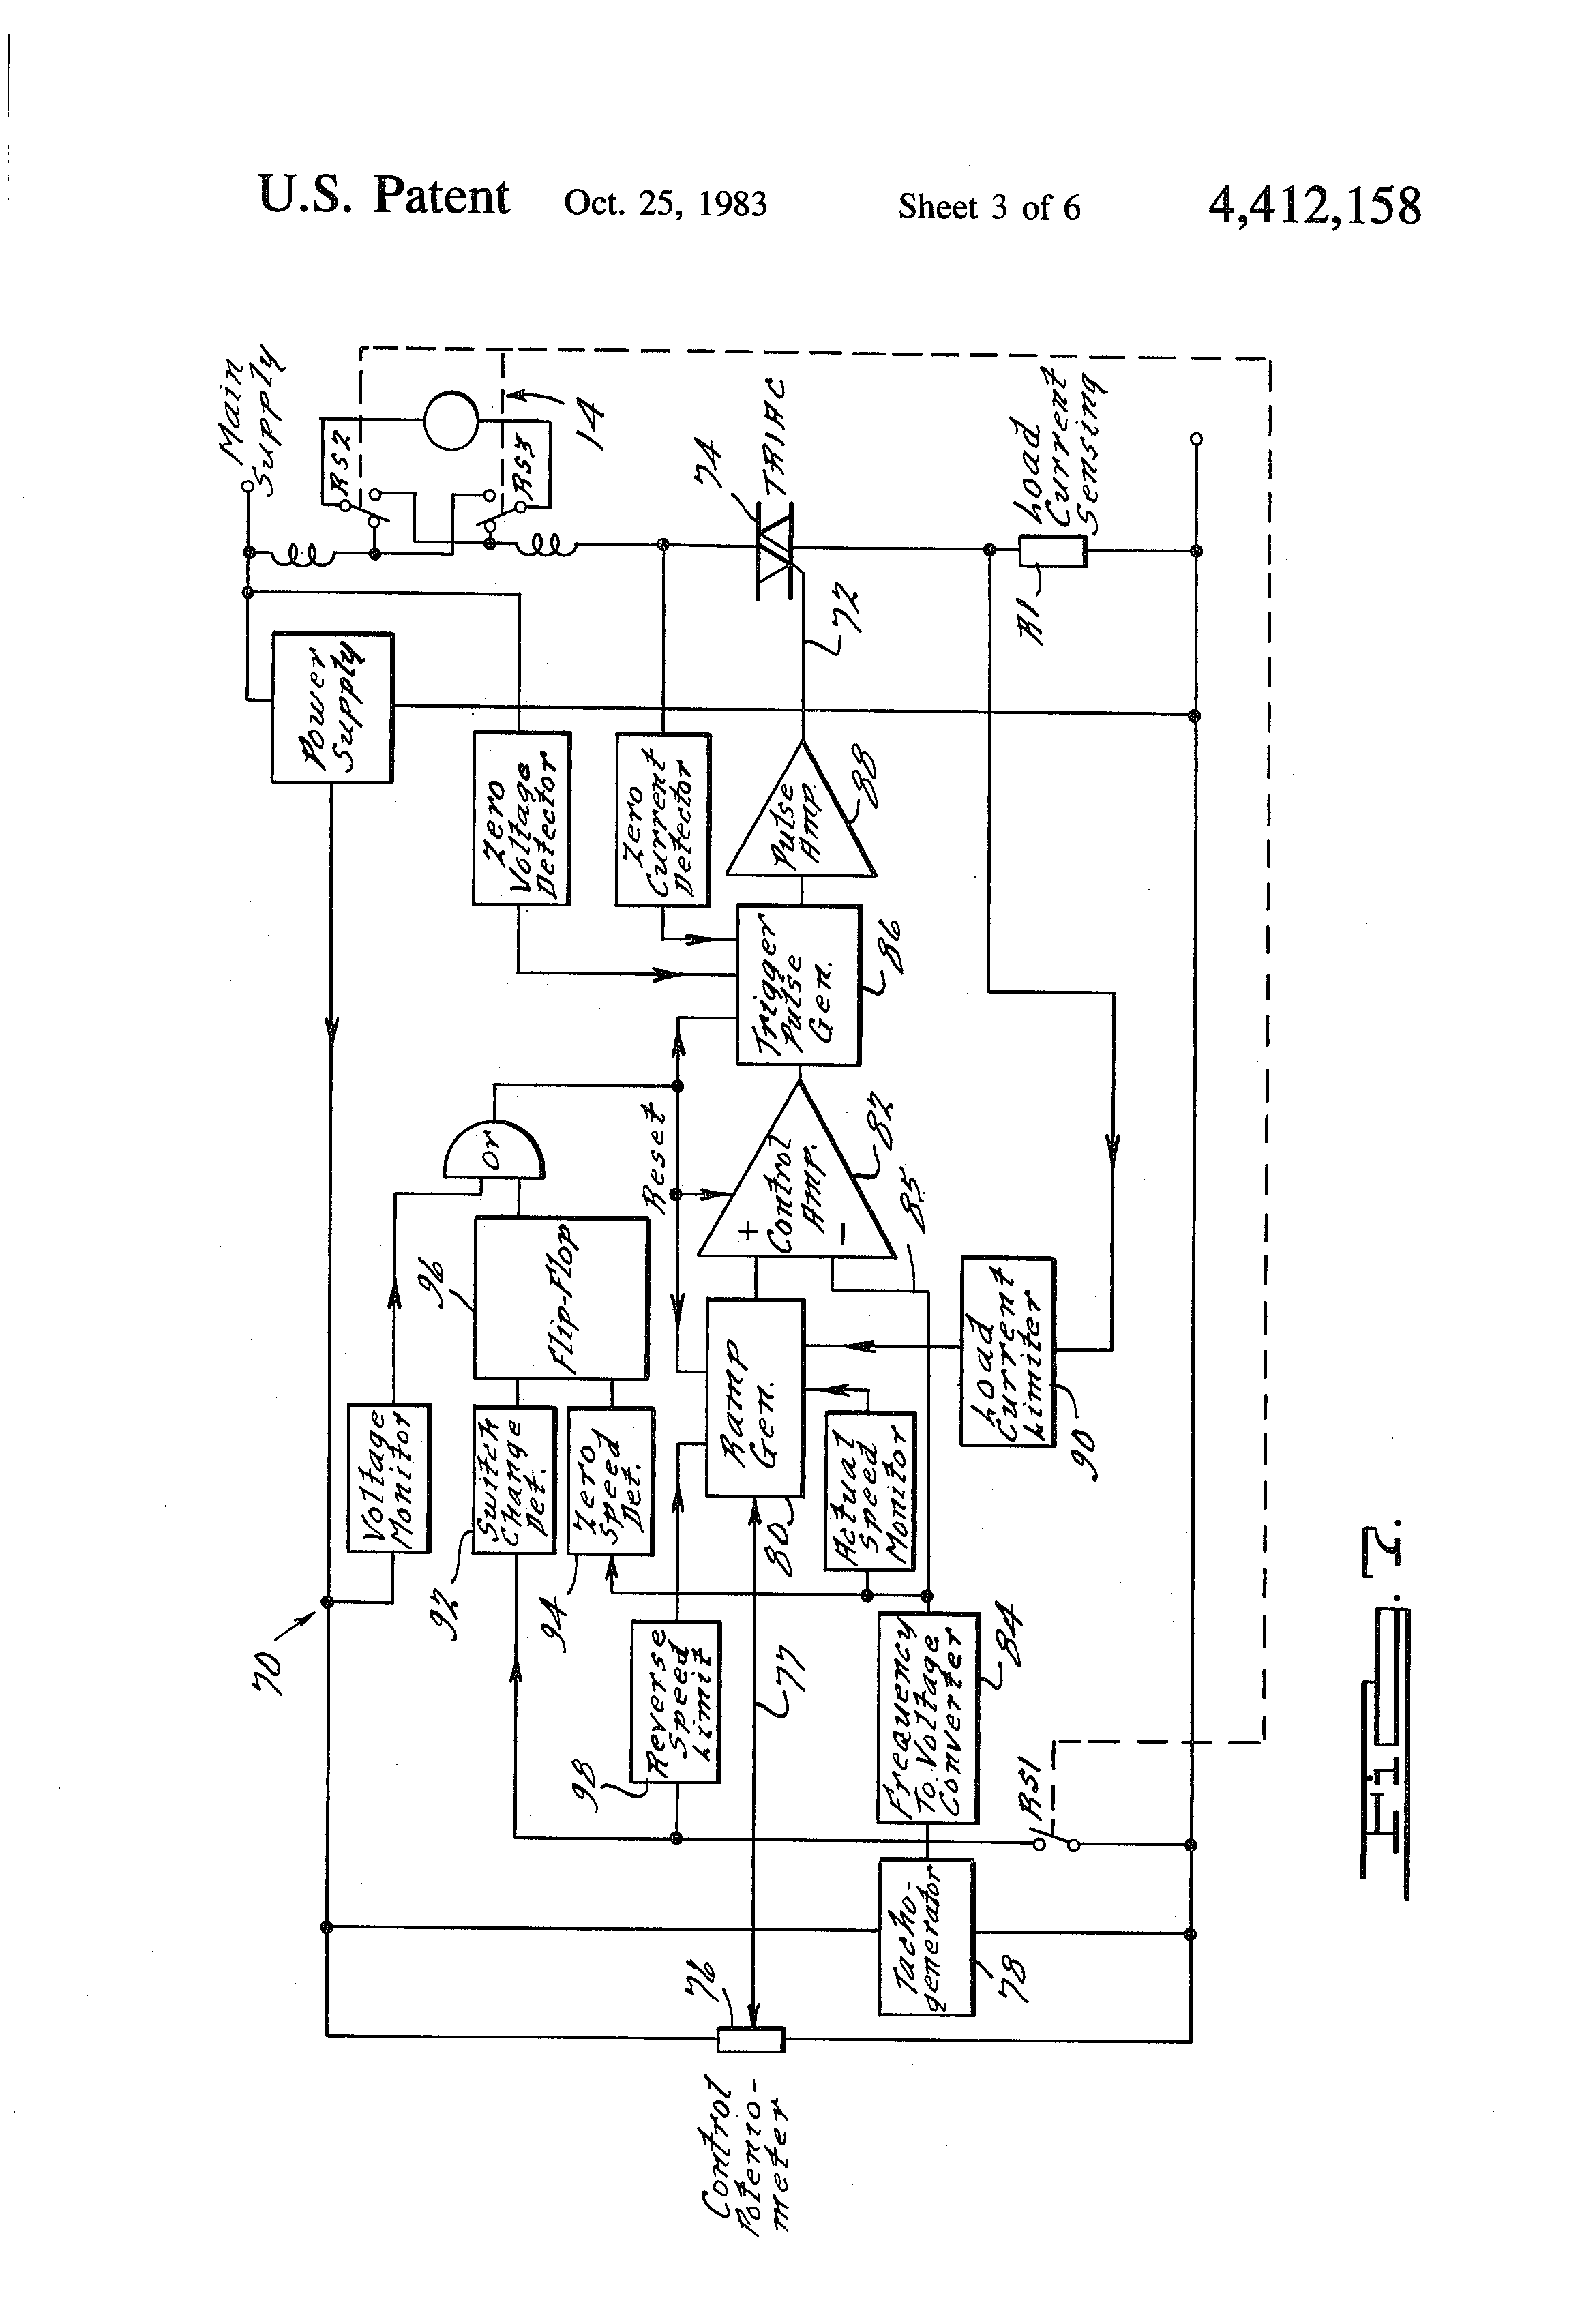 Circuit Diagram Drawing Tool